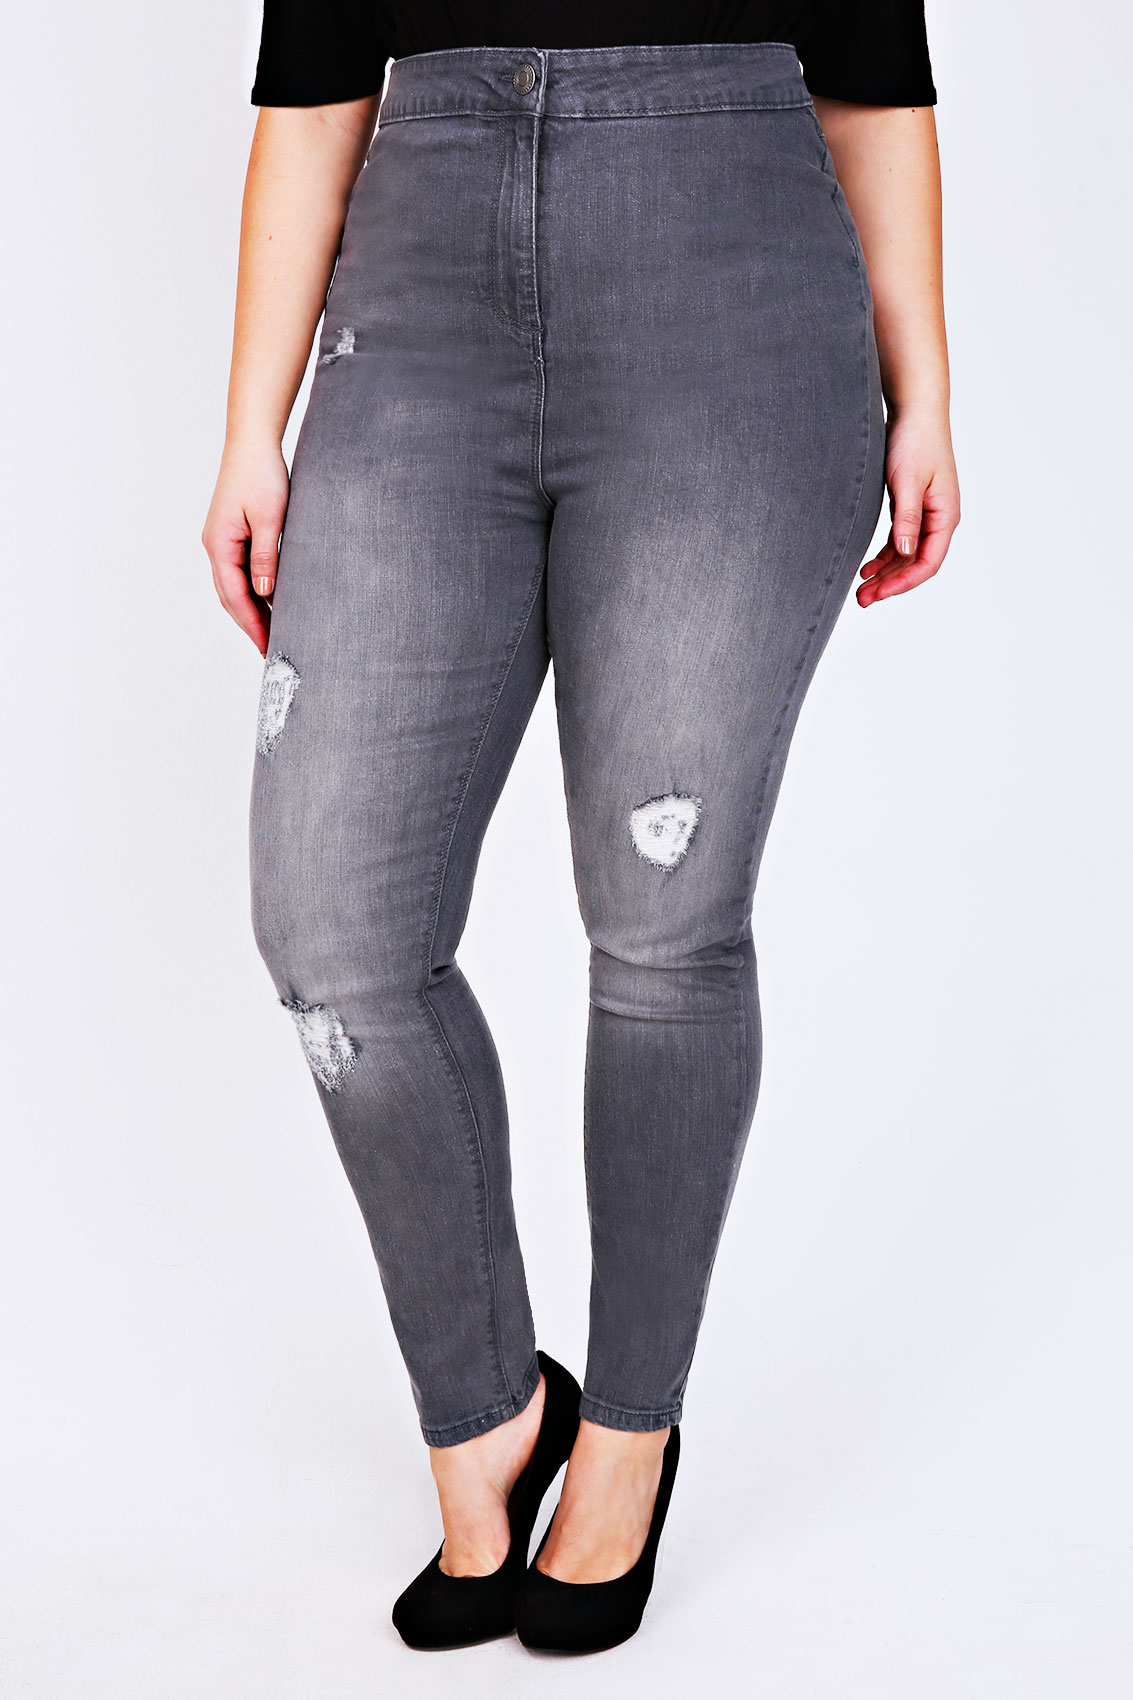 Super High Waisted Stretchy Skinny Jeans in Light Gray (Plus Sizes Available) 1 Verified Buyer. Regular Price: -Waist 12 inches (not stretched)-Inseam 30 inches-Length 41 inches Love the high waist! Color was true to the picture. Size chart was spot on.